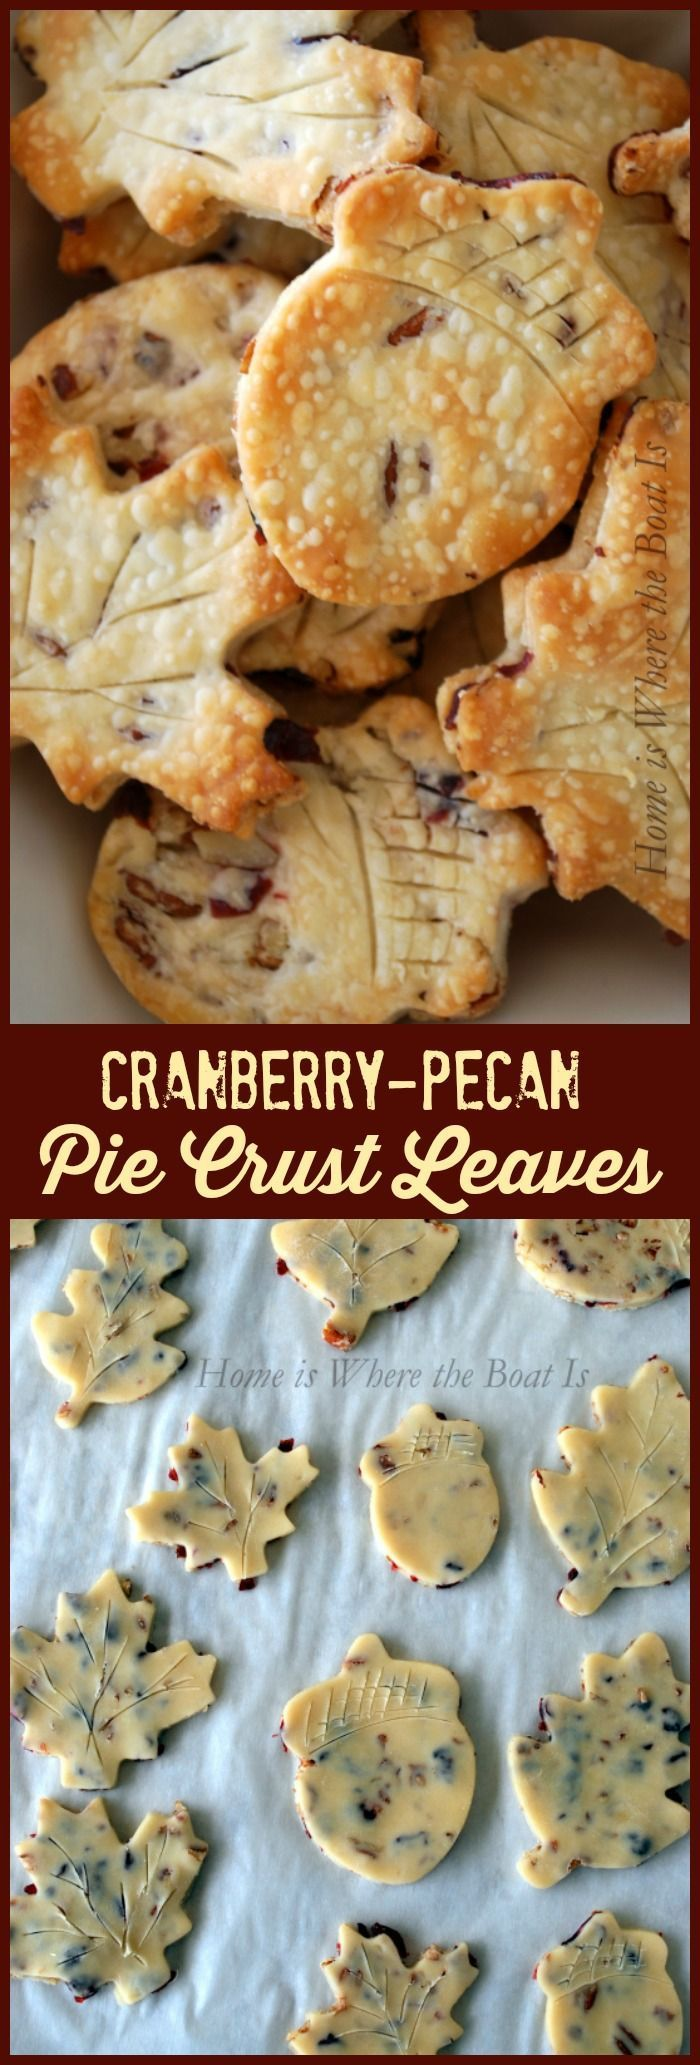 Cranberry-Pecan Pie Crust Leaves Dress up your left over Thanksgiving turkey…